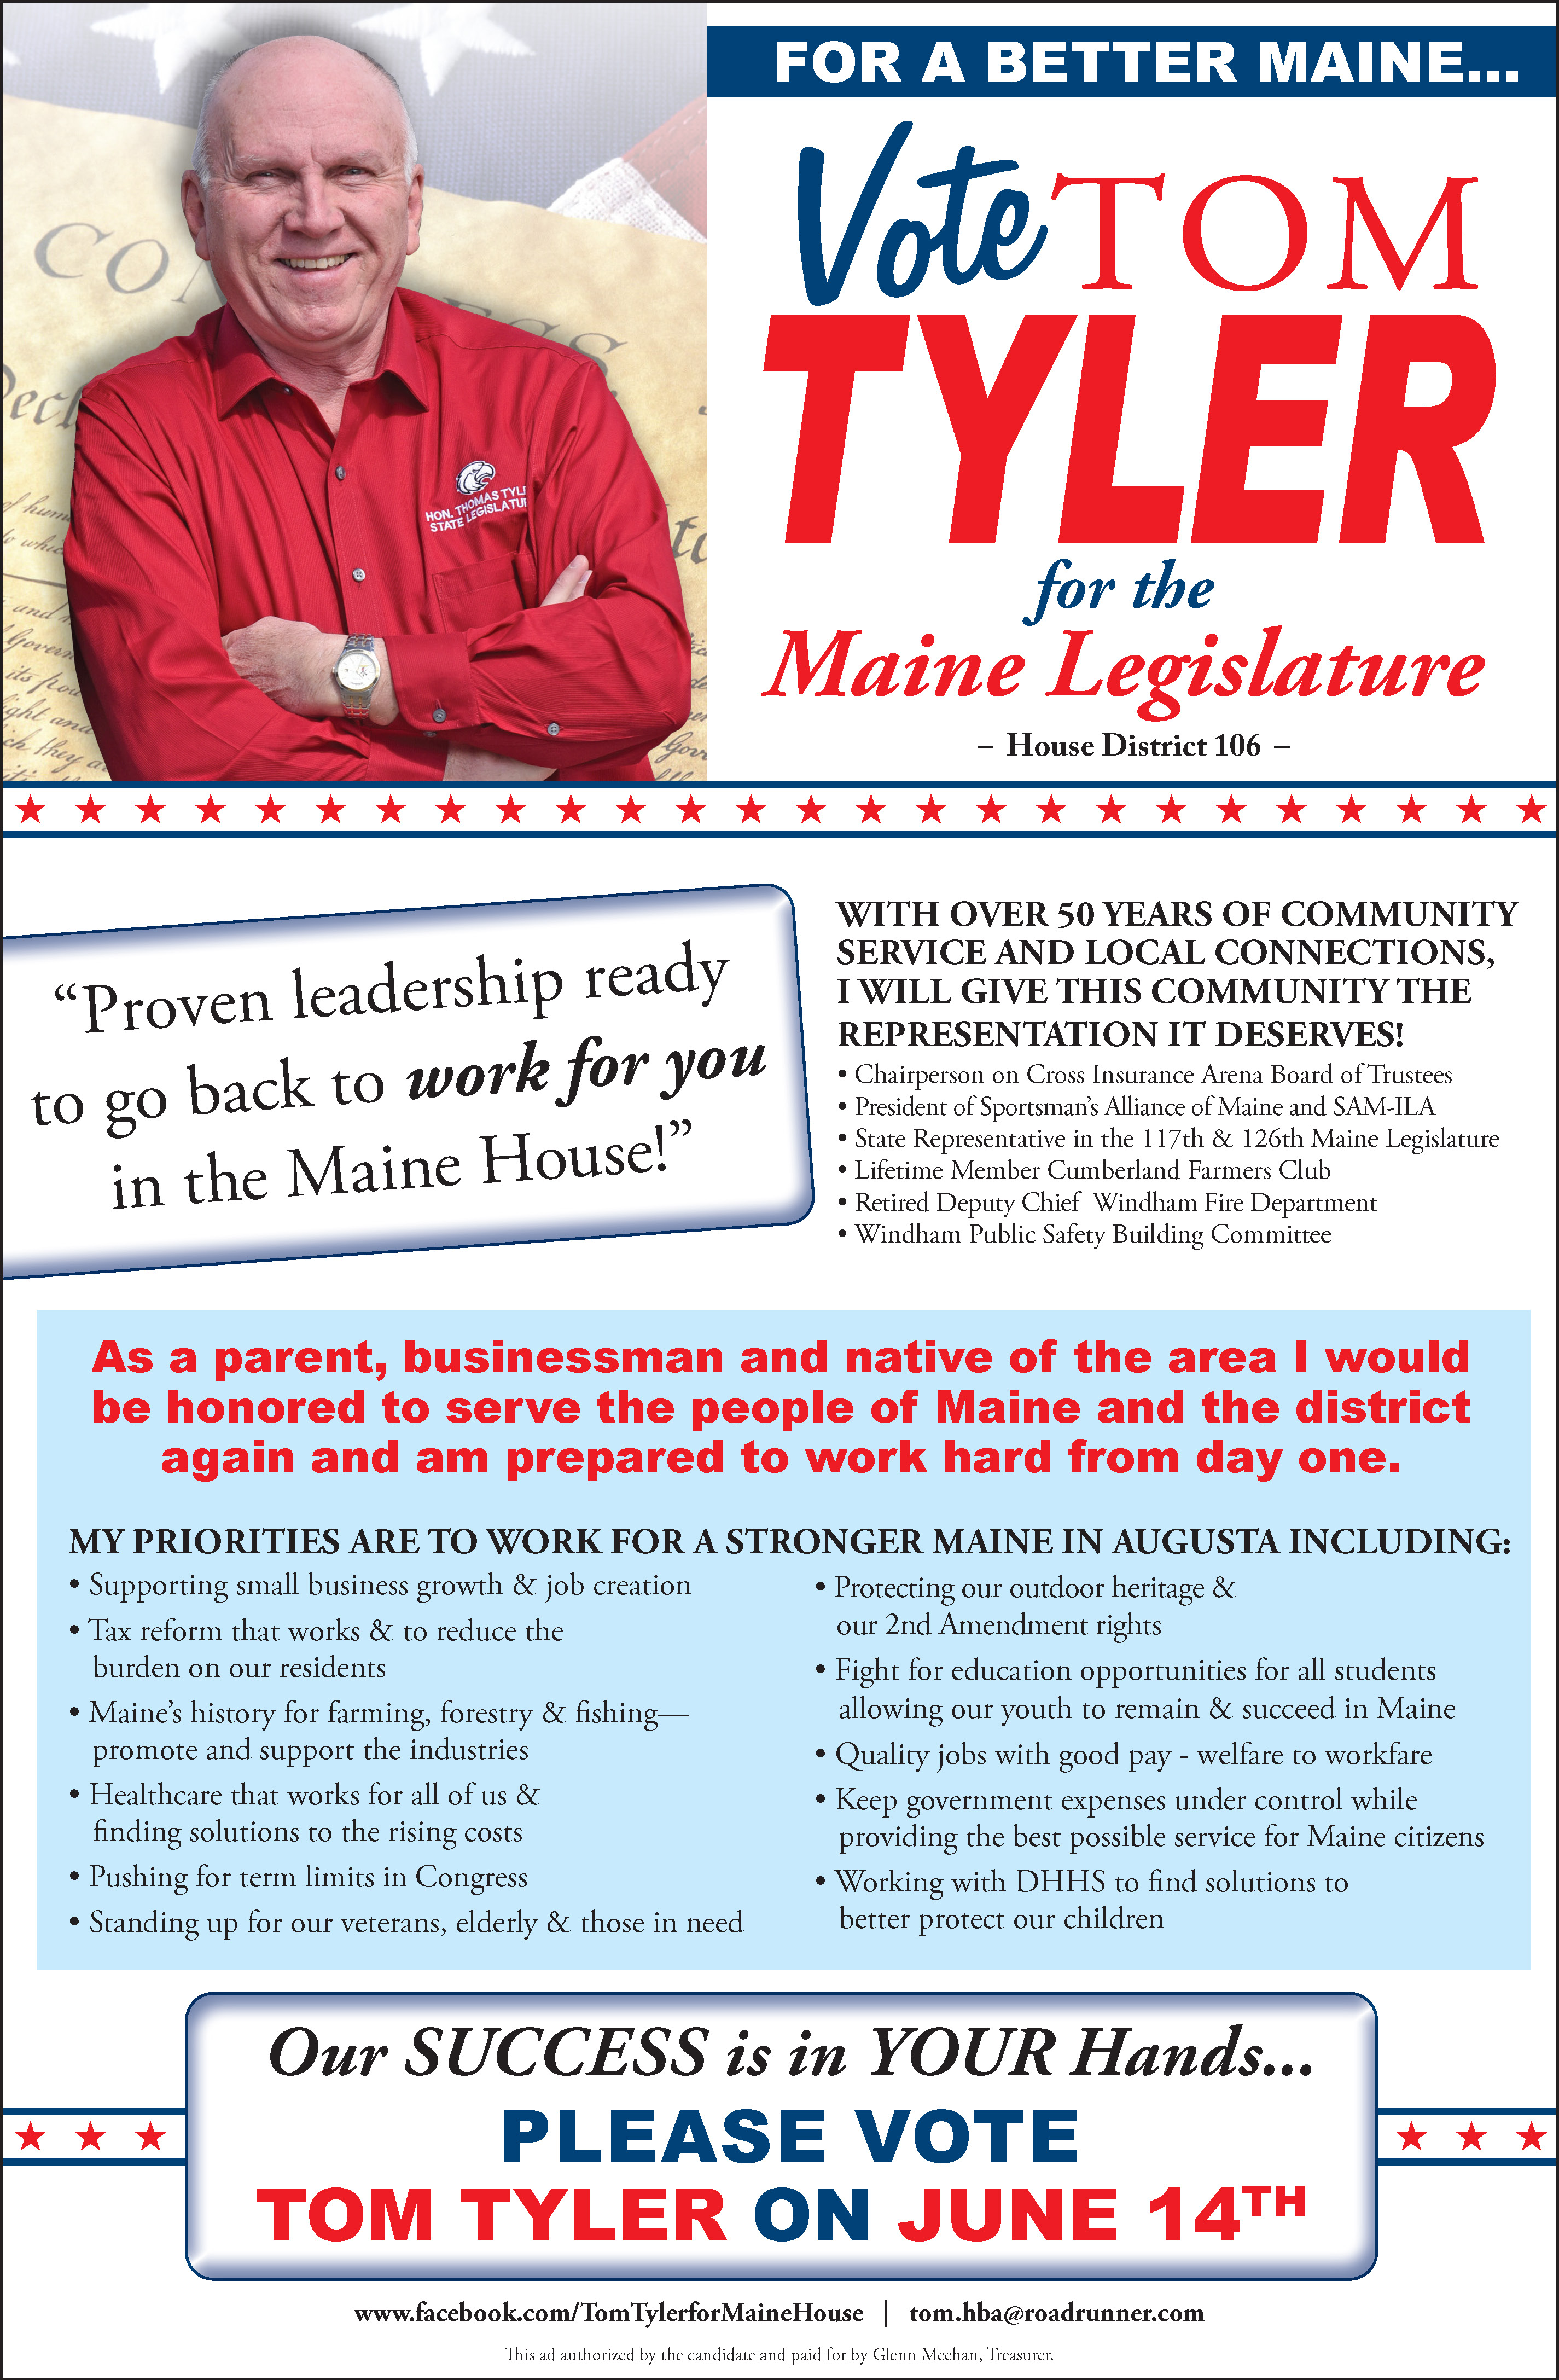 https://www.facebook.com/Tom-Tyler-for-Maine-House-374831959591528/